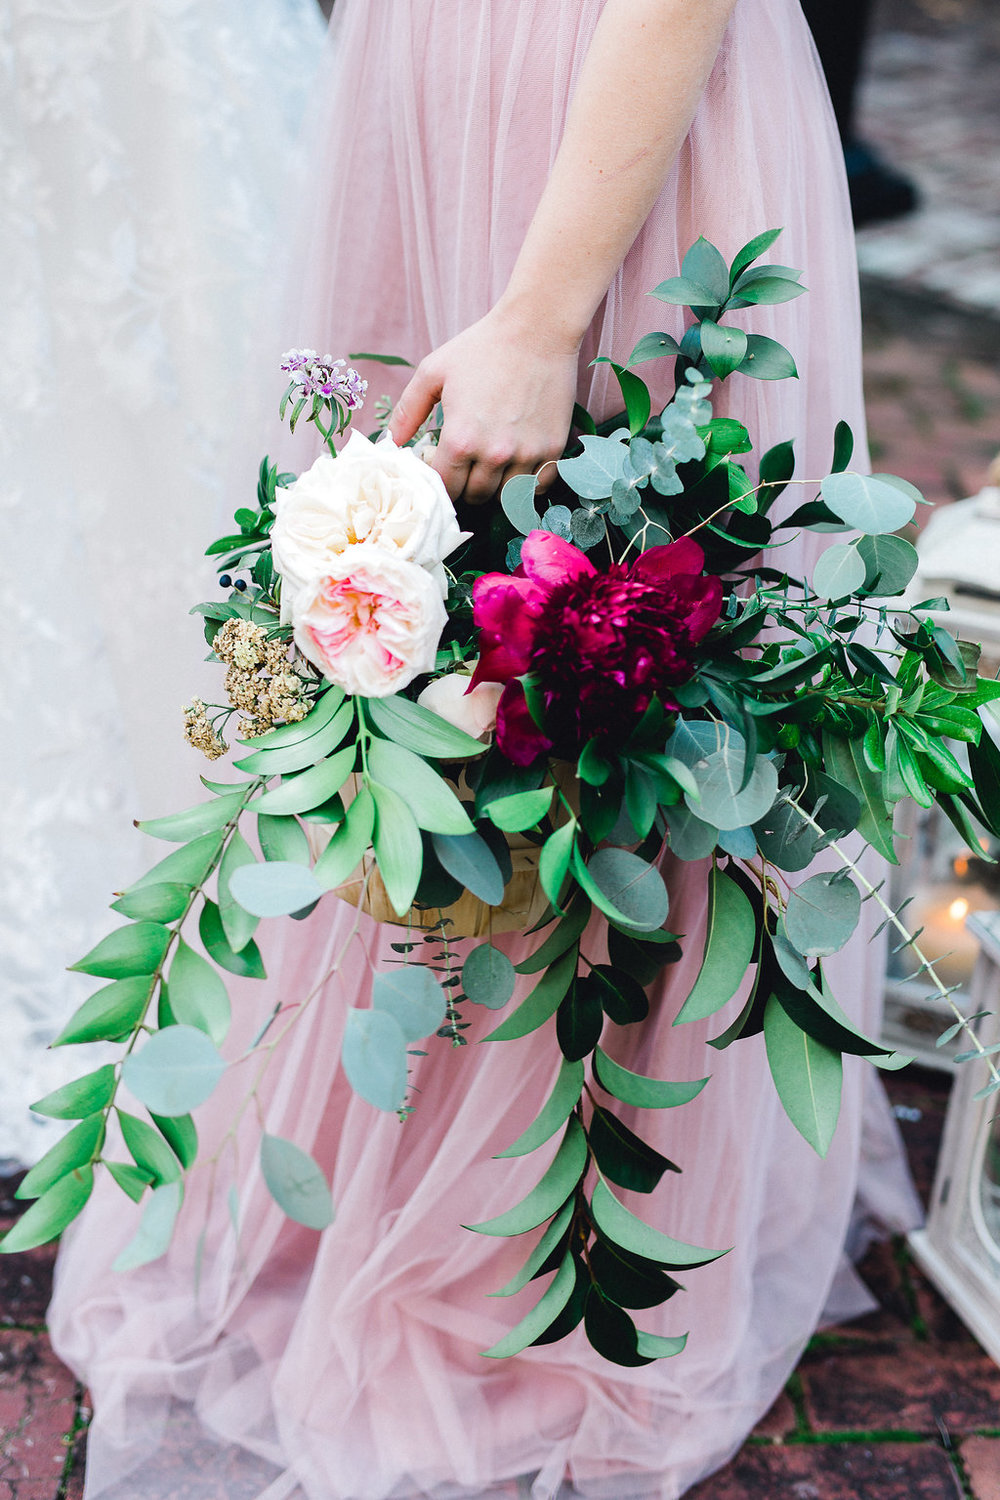 savannah-florist-ivory-and-beau-savannah-wedding-florist-savannah-wedding-flowers-ships-of-the-sea-wedding-inspiration-wedding-planner-bridesmaid-bouquet-hayley-paige-occasions-bridesmaids-dresses.JPG